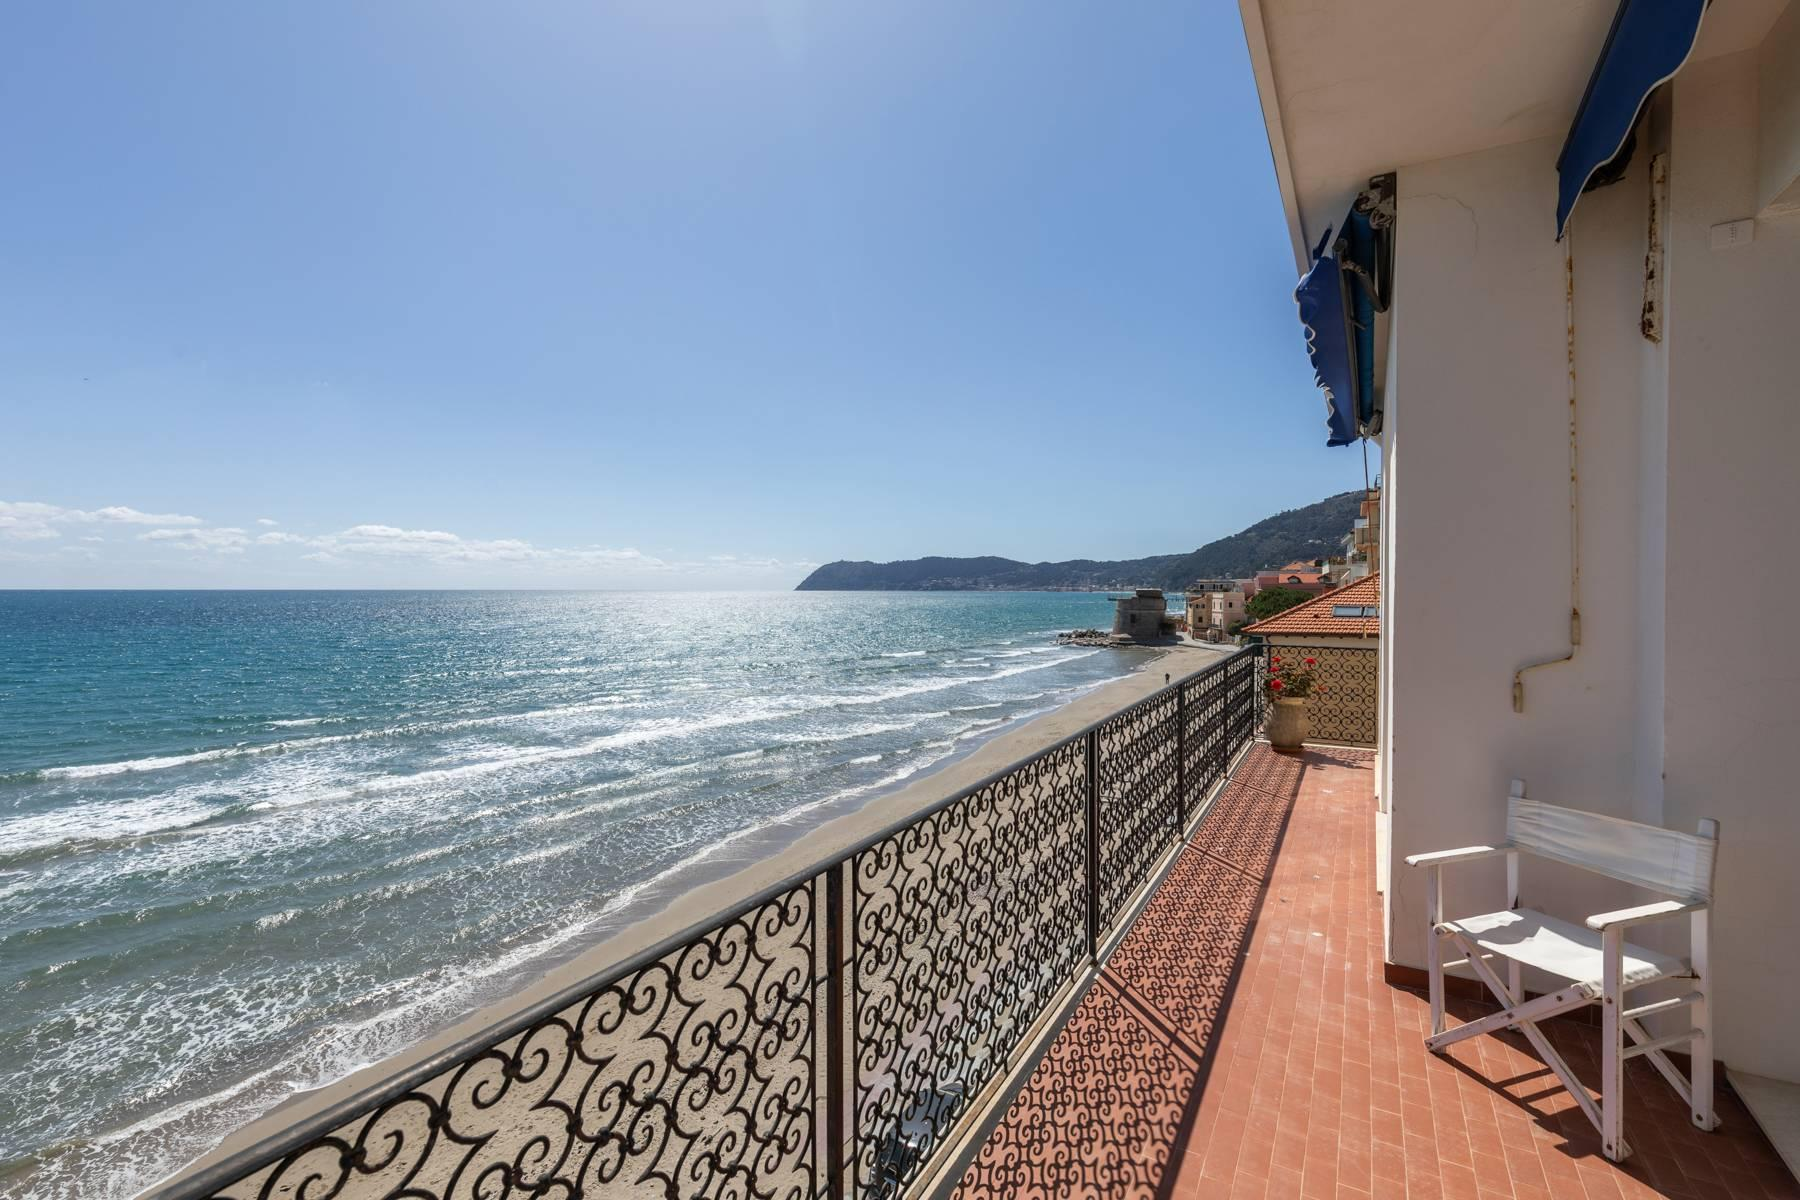 Panorama-Wohnung am Meer in Alassio - 6